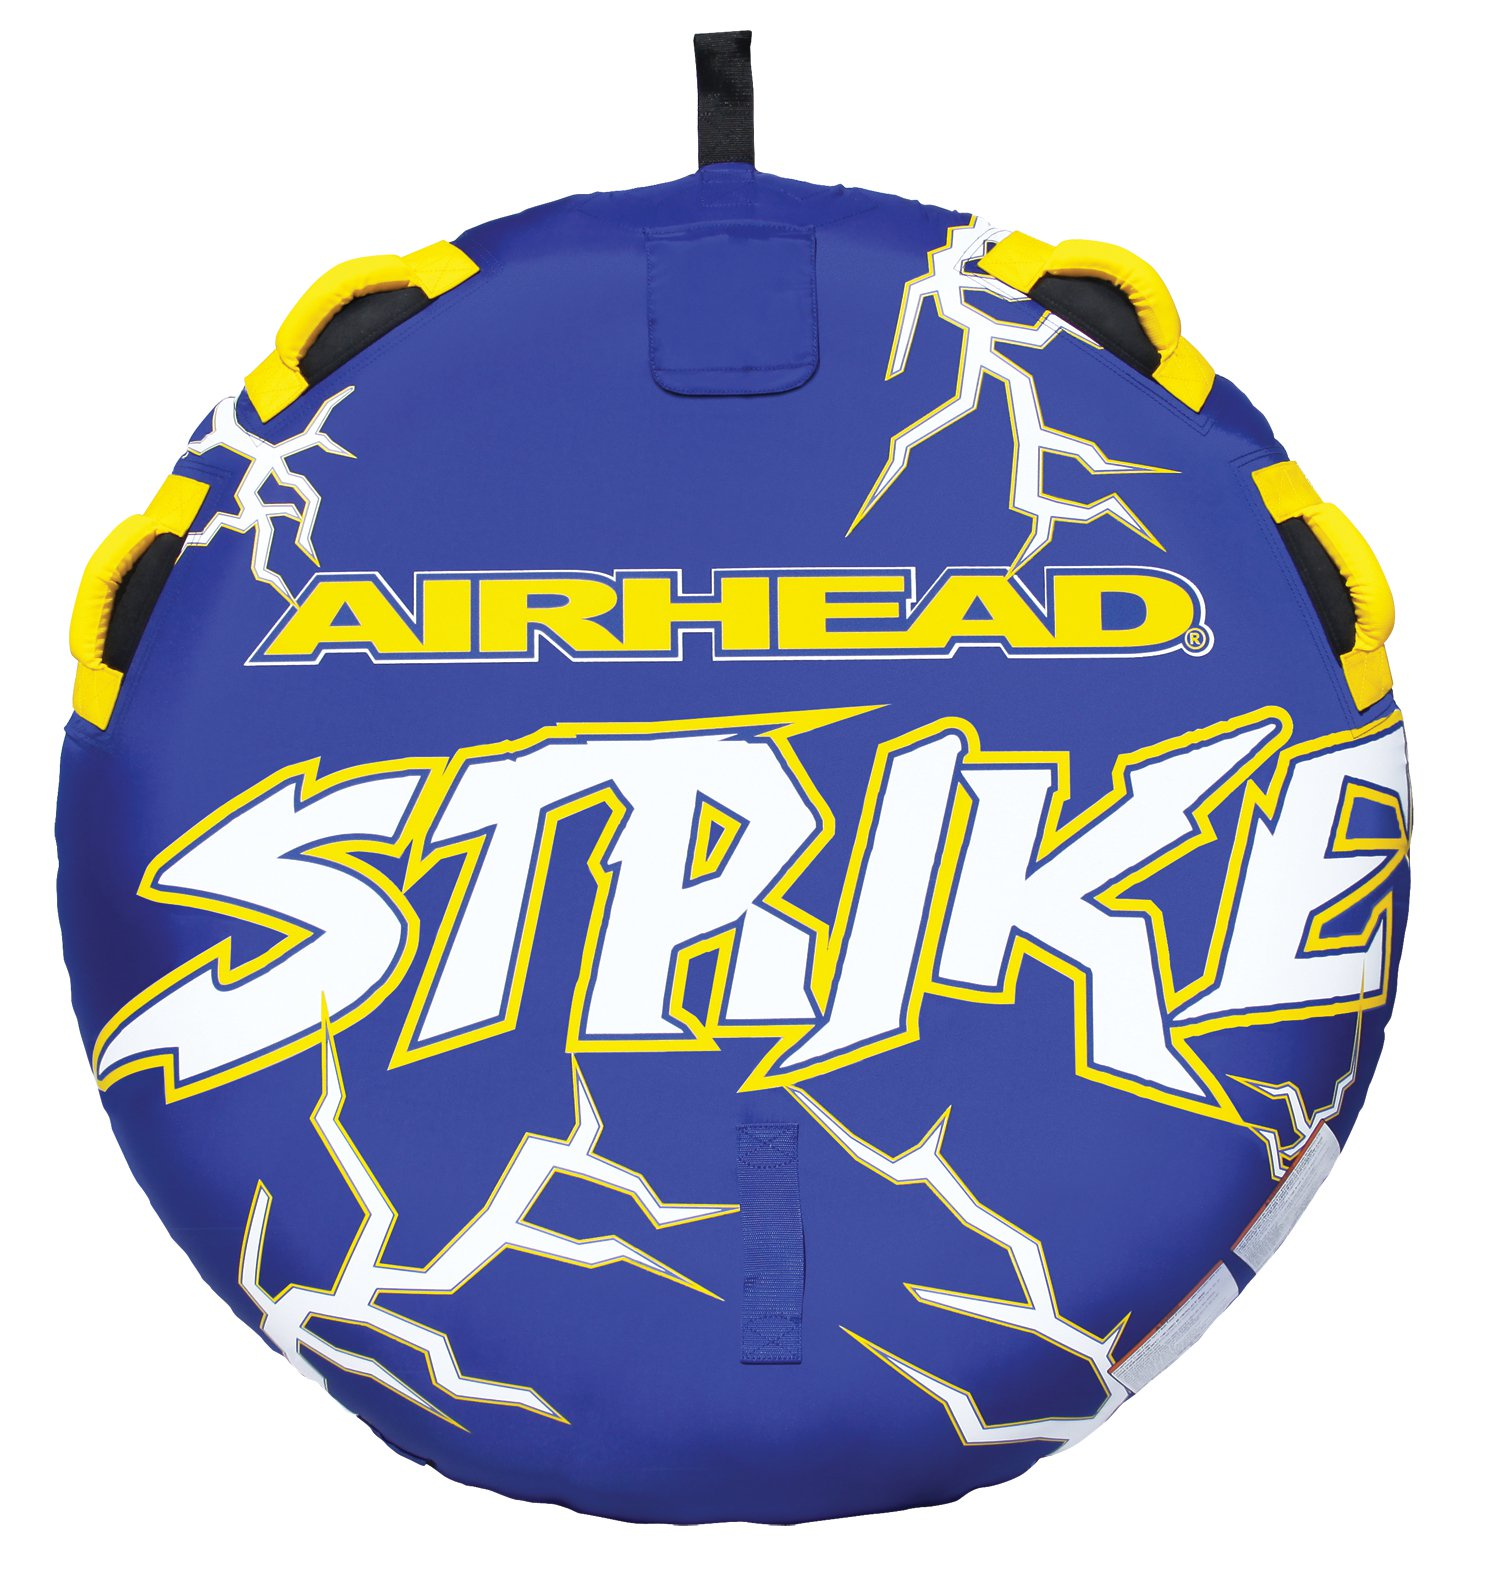 Airhead Strike 2 Single Rider Inflatable Towable Lake Water Deck Tube | AHST-23